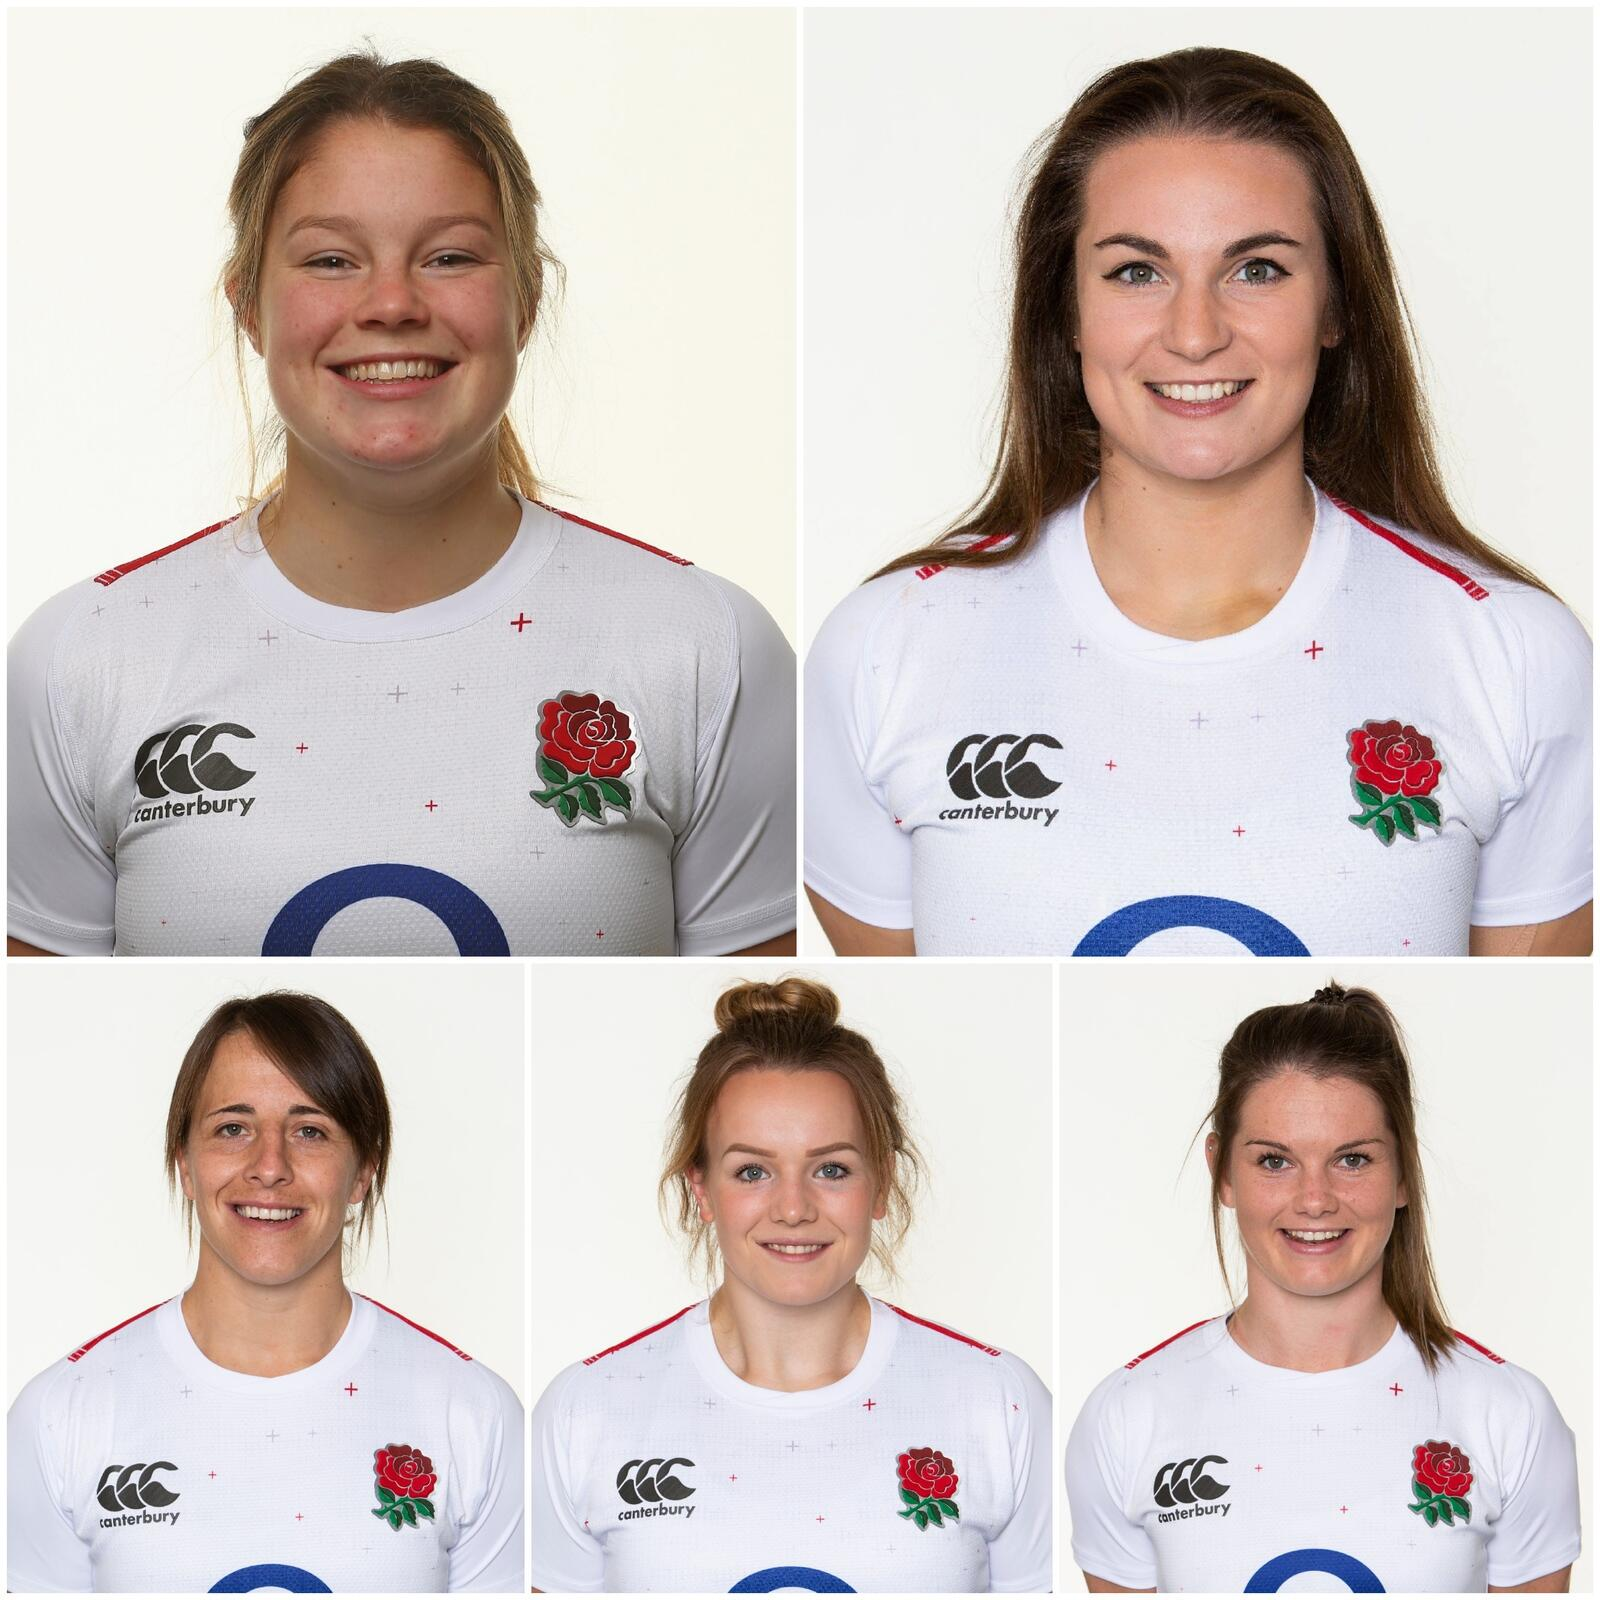 Six Nations Special: Jess Breach, Leanne Riley, Lark Davies, Jo Brown and Katy Daley-McLean